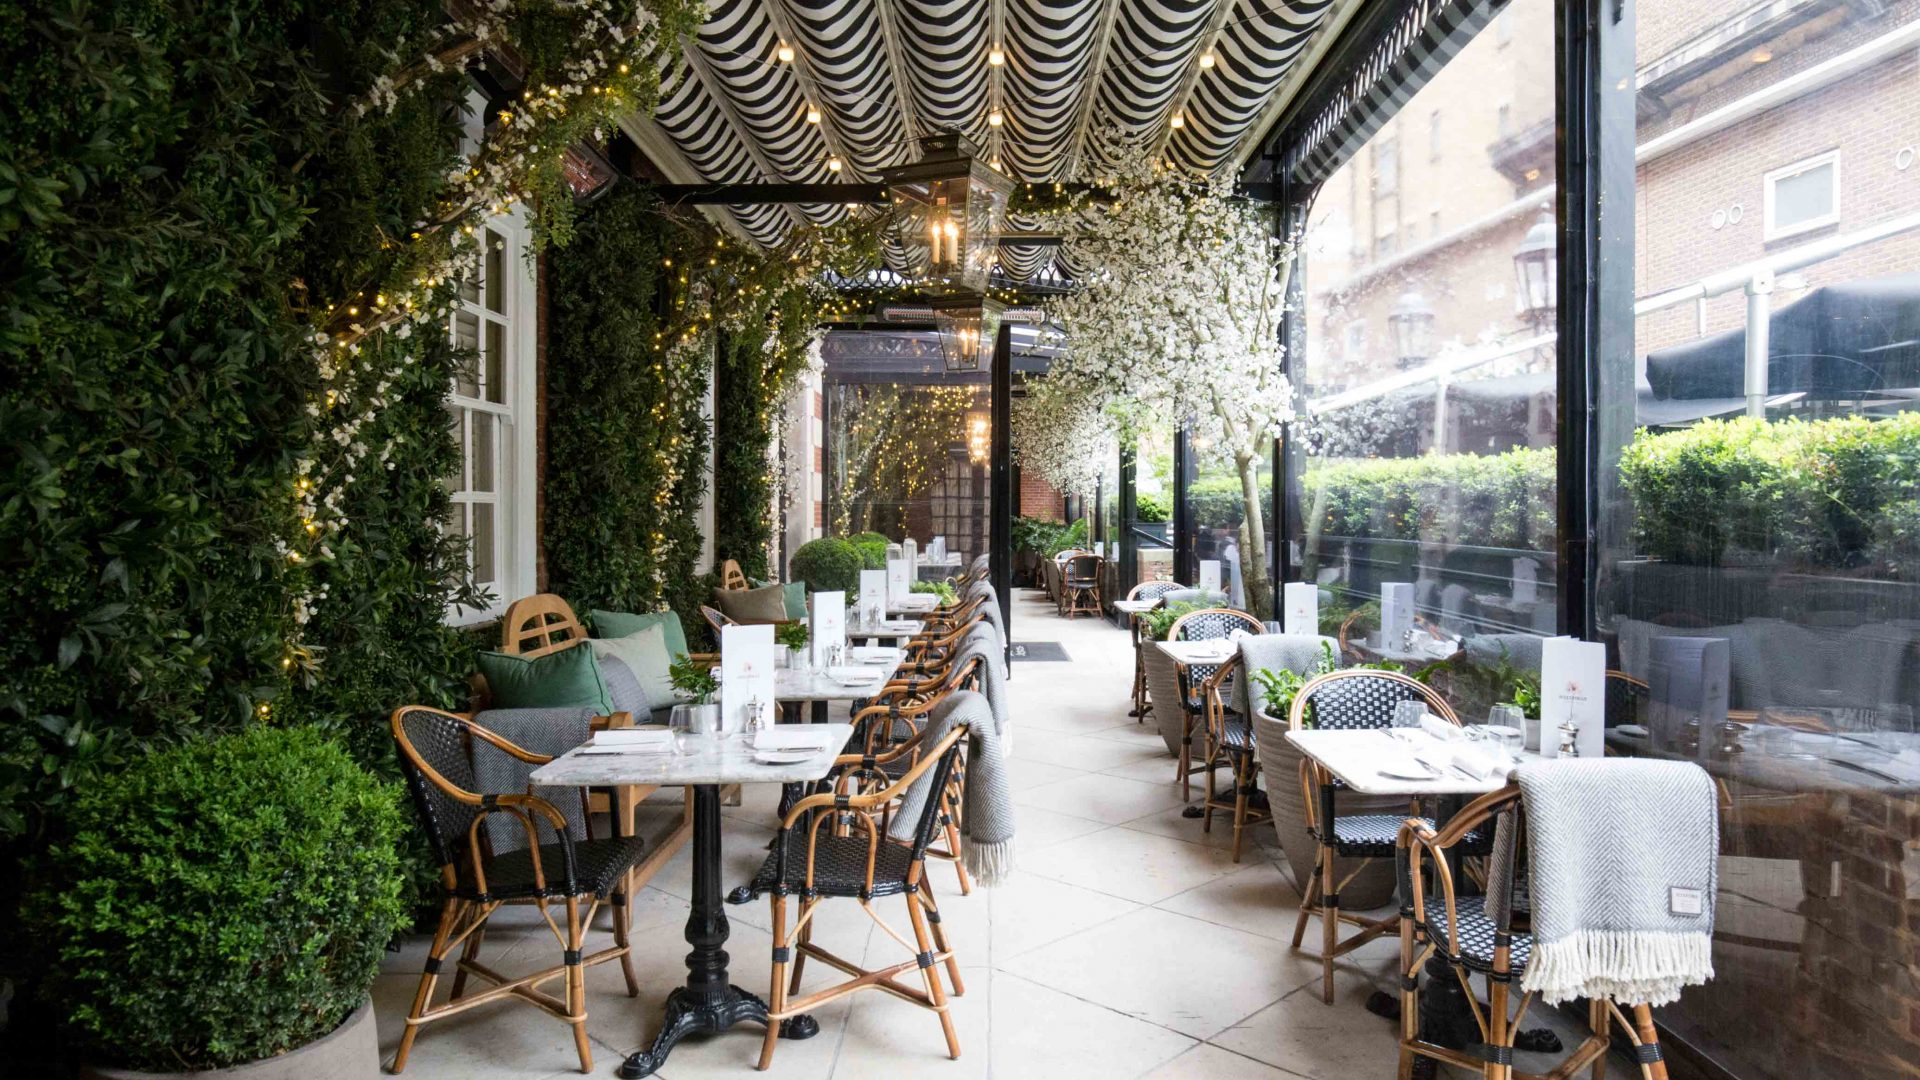 Dalloway Terrace amp Bar Is An Elegant Poetic And